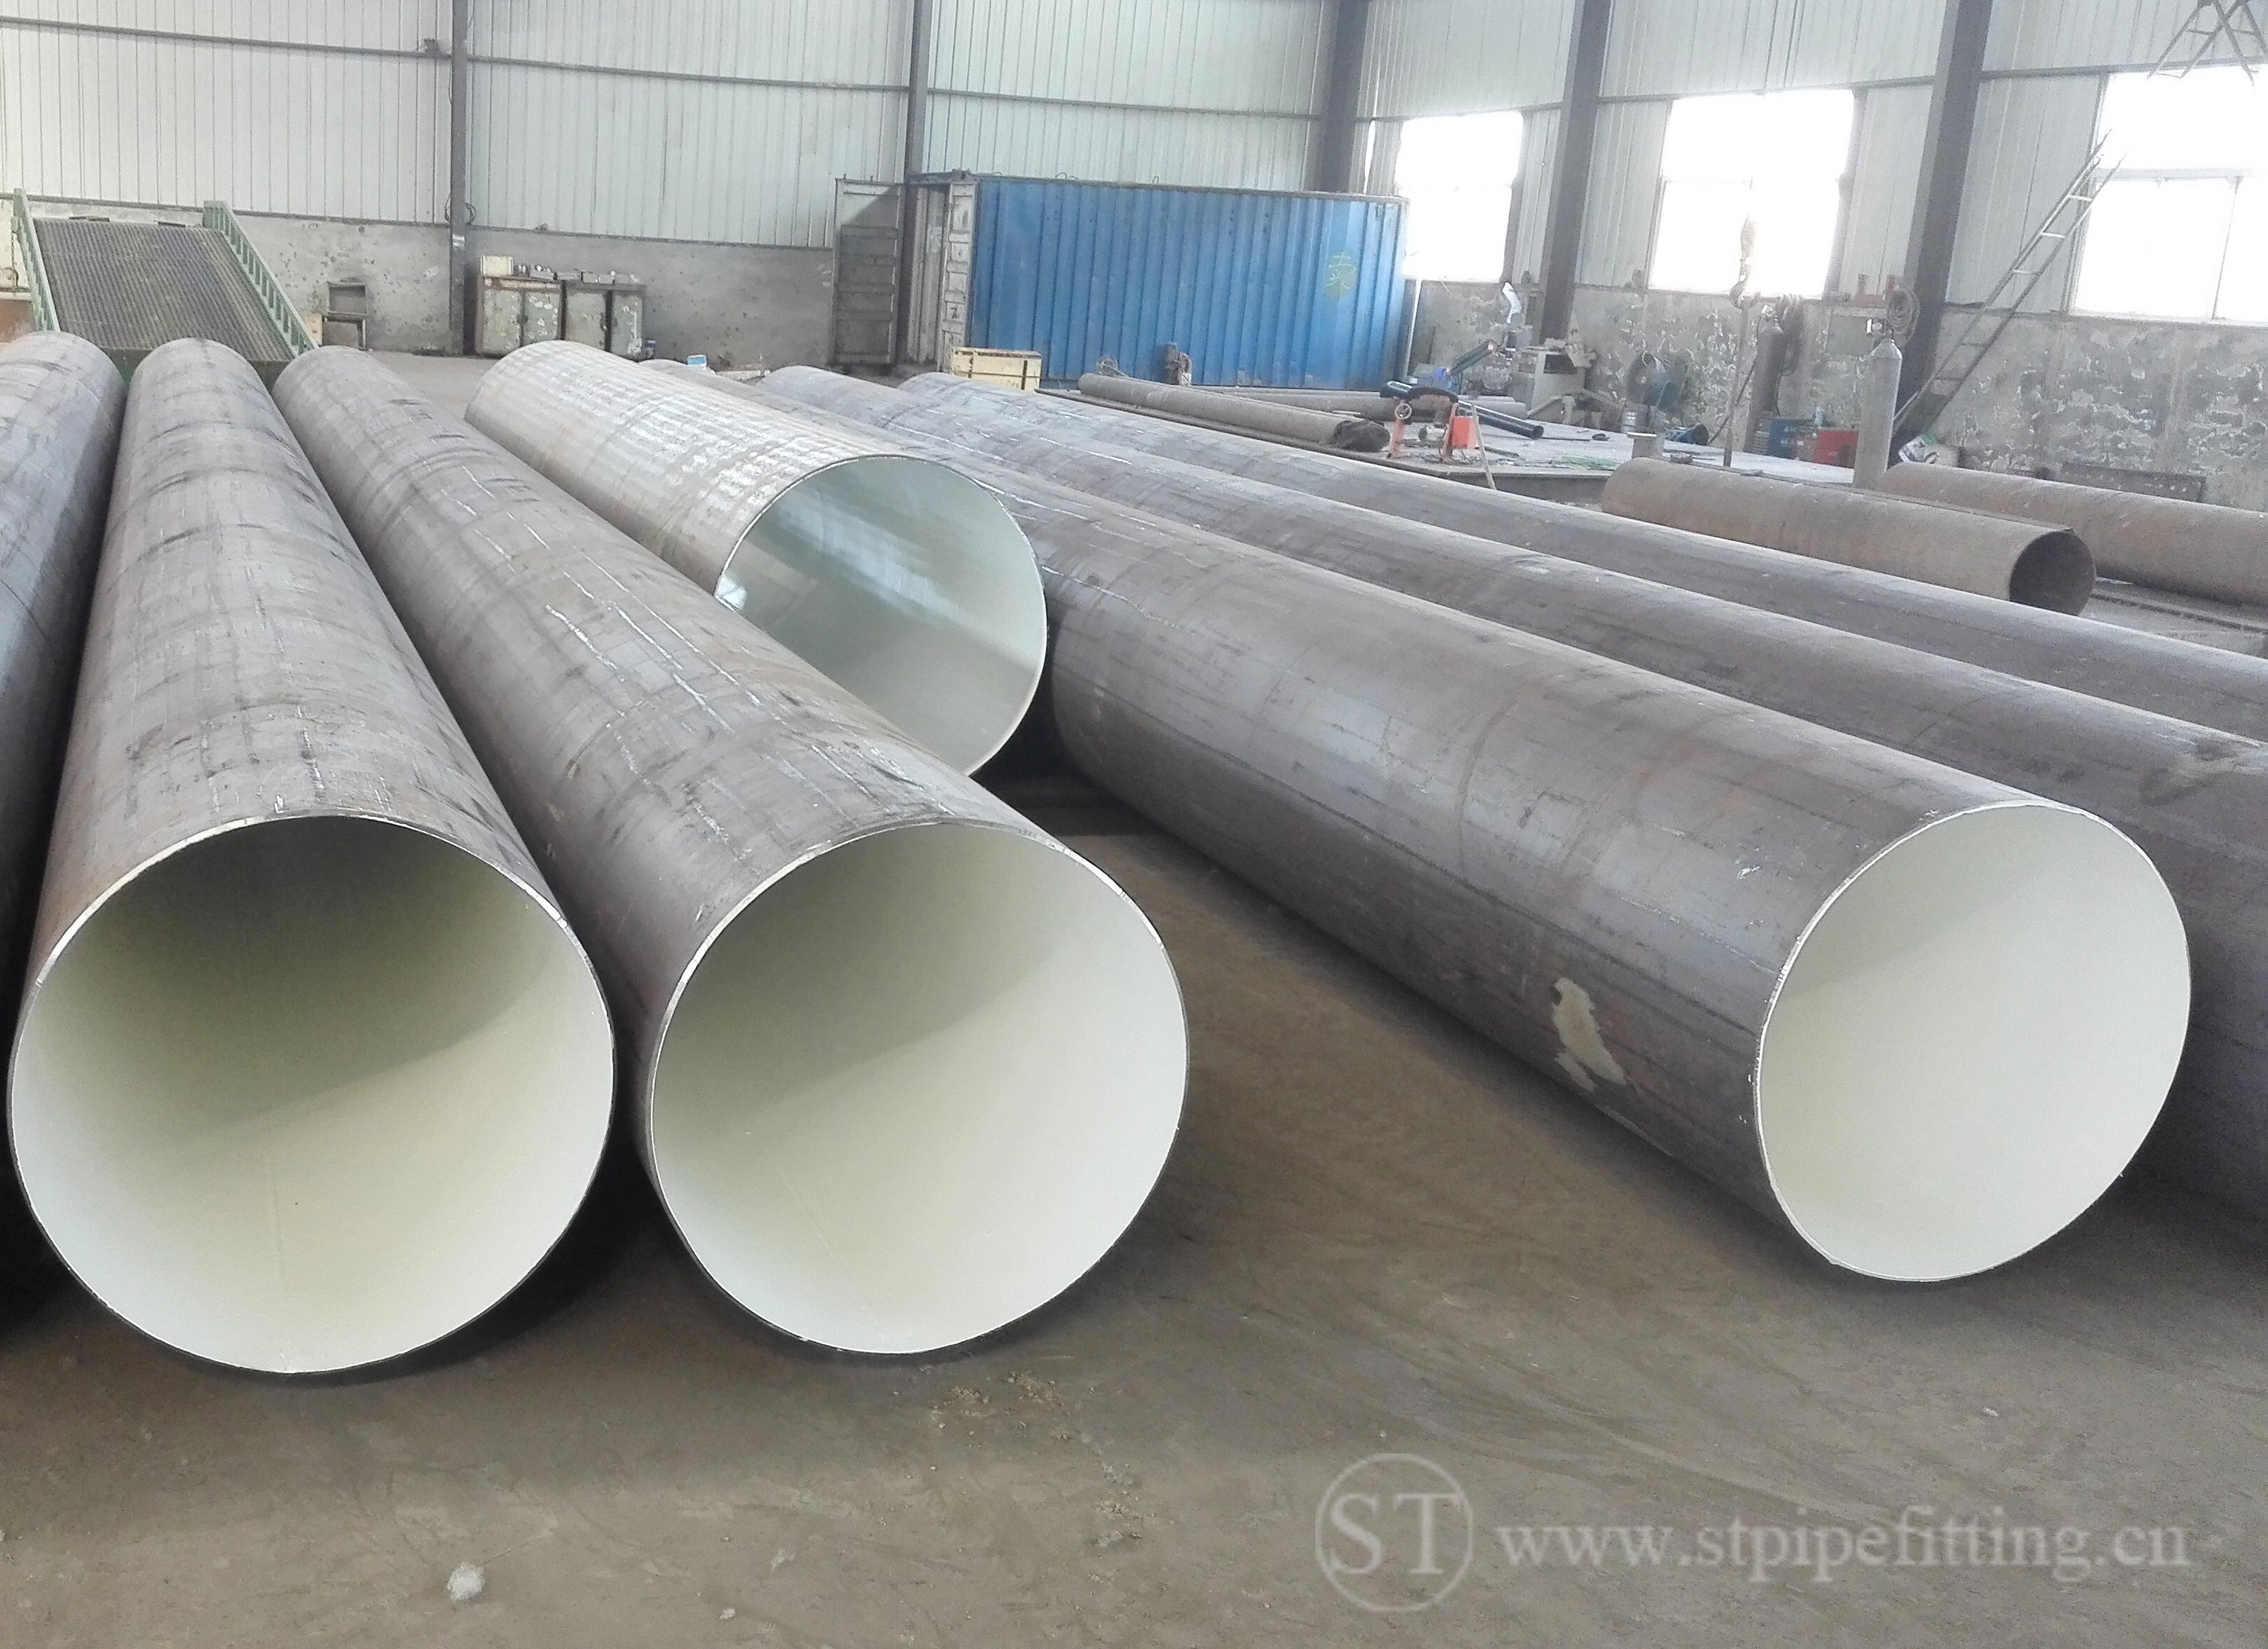 Prefabricated piping